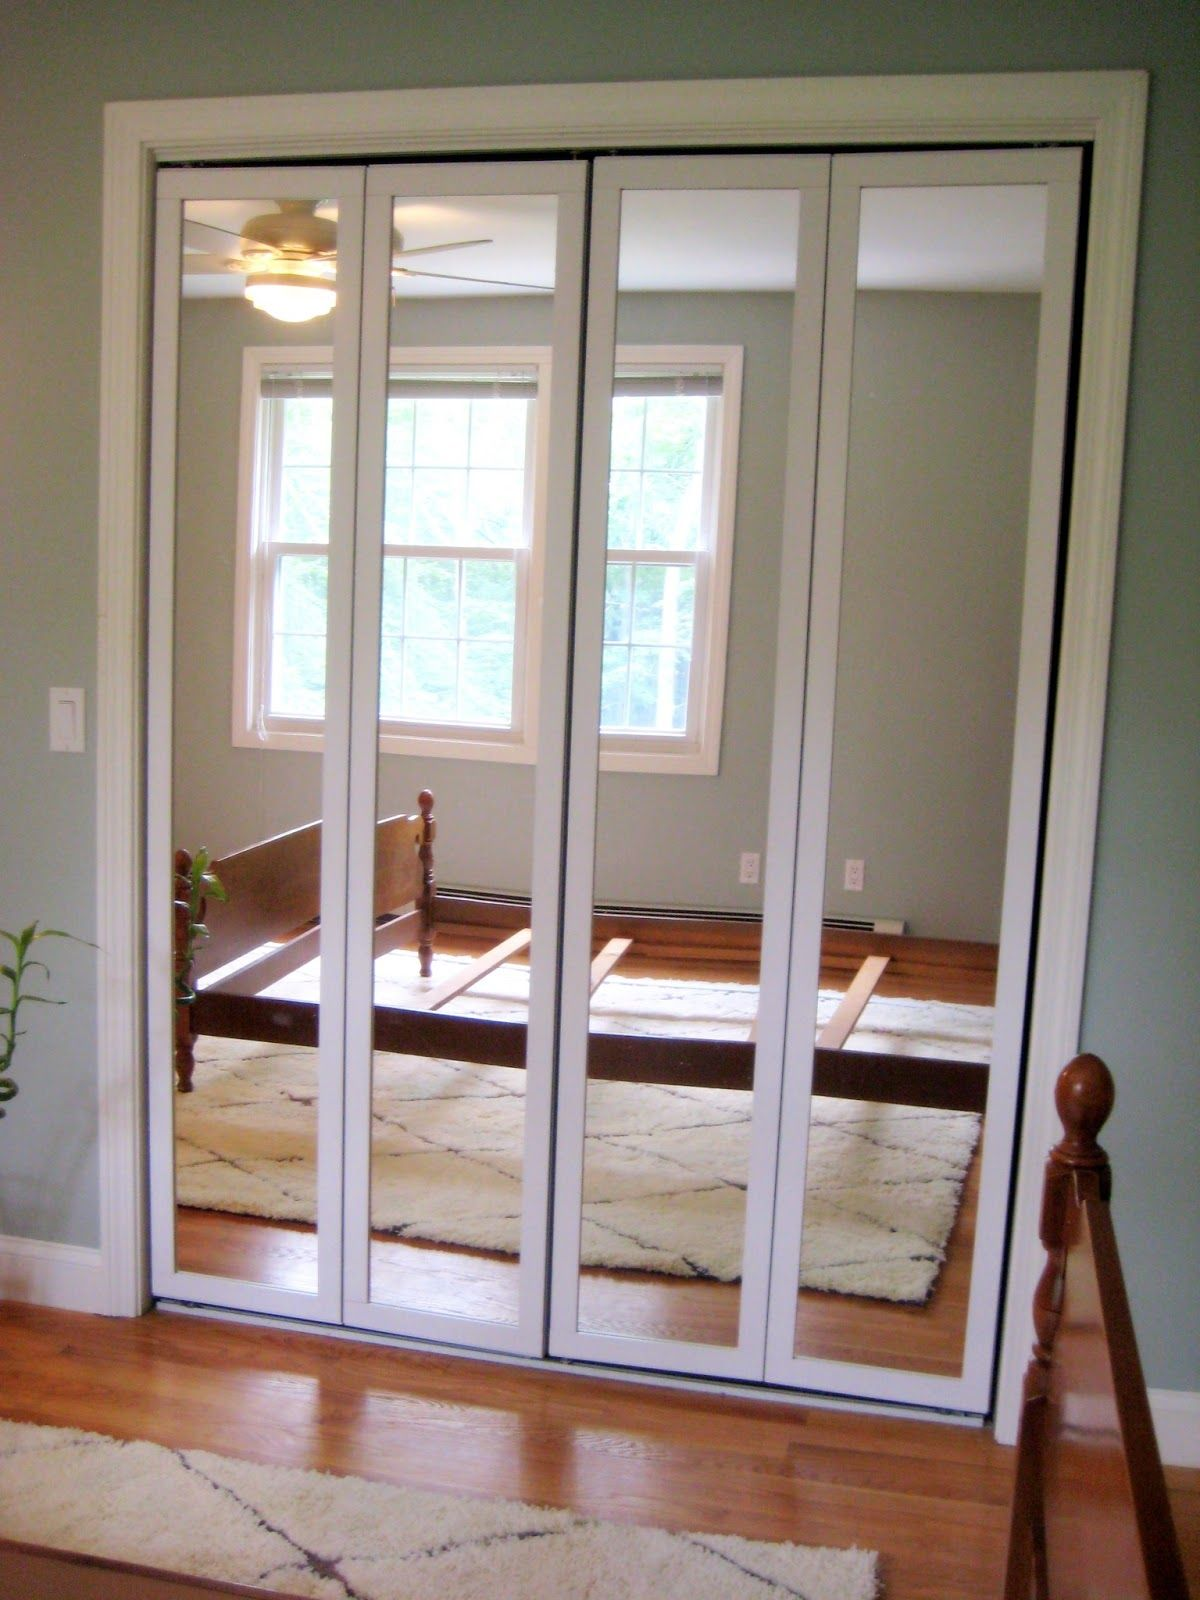 Hallway closet door  A Homeownerus Touch Updating BiFold Mirrored Doors  home design